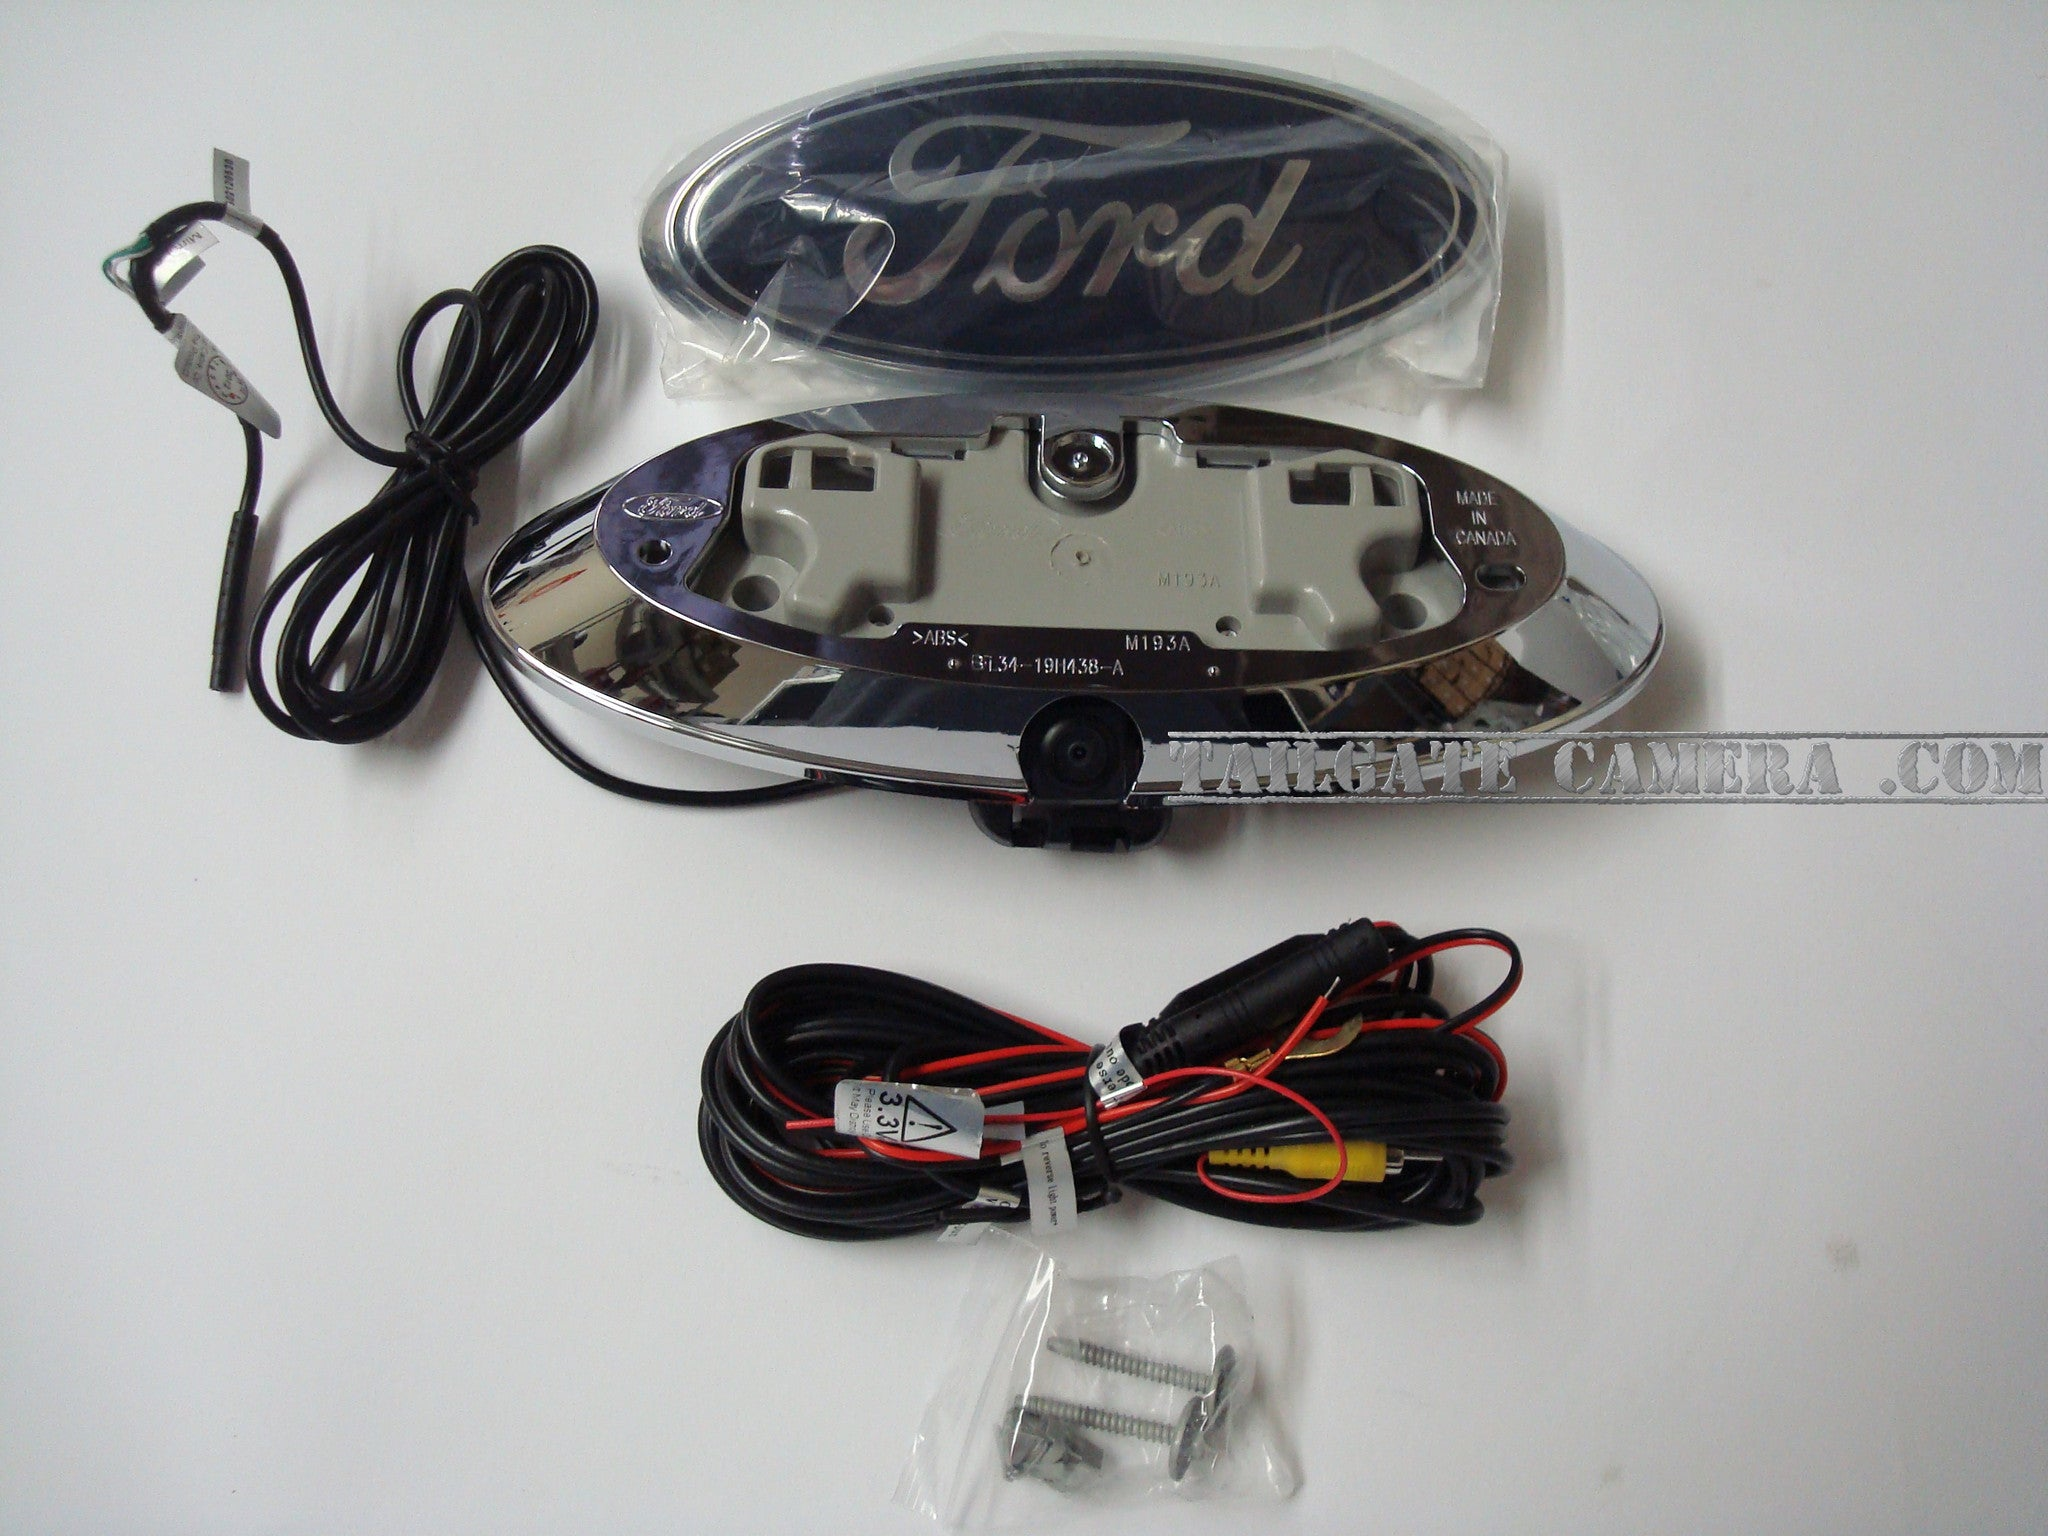 dsc1492?v=1361385570 ford,f150,tailgate,emblem,camera,ford,f250,tailgate,camera,f350 2016 ford f250 backup camera wiring diagram at edmiracle.co